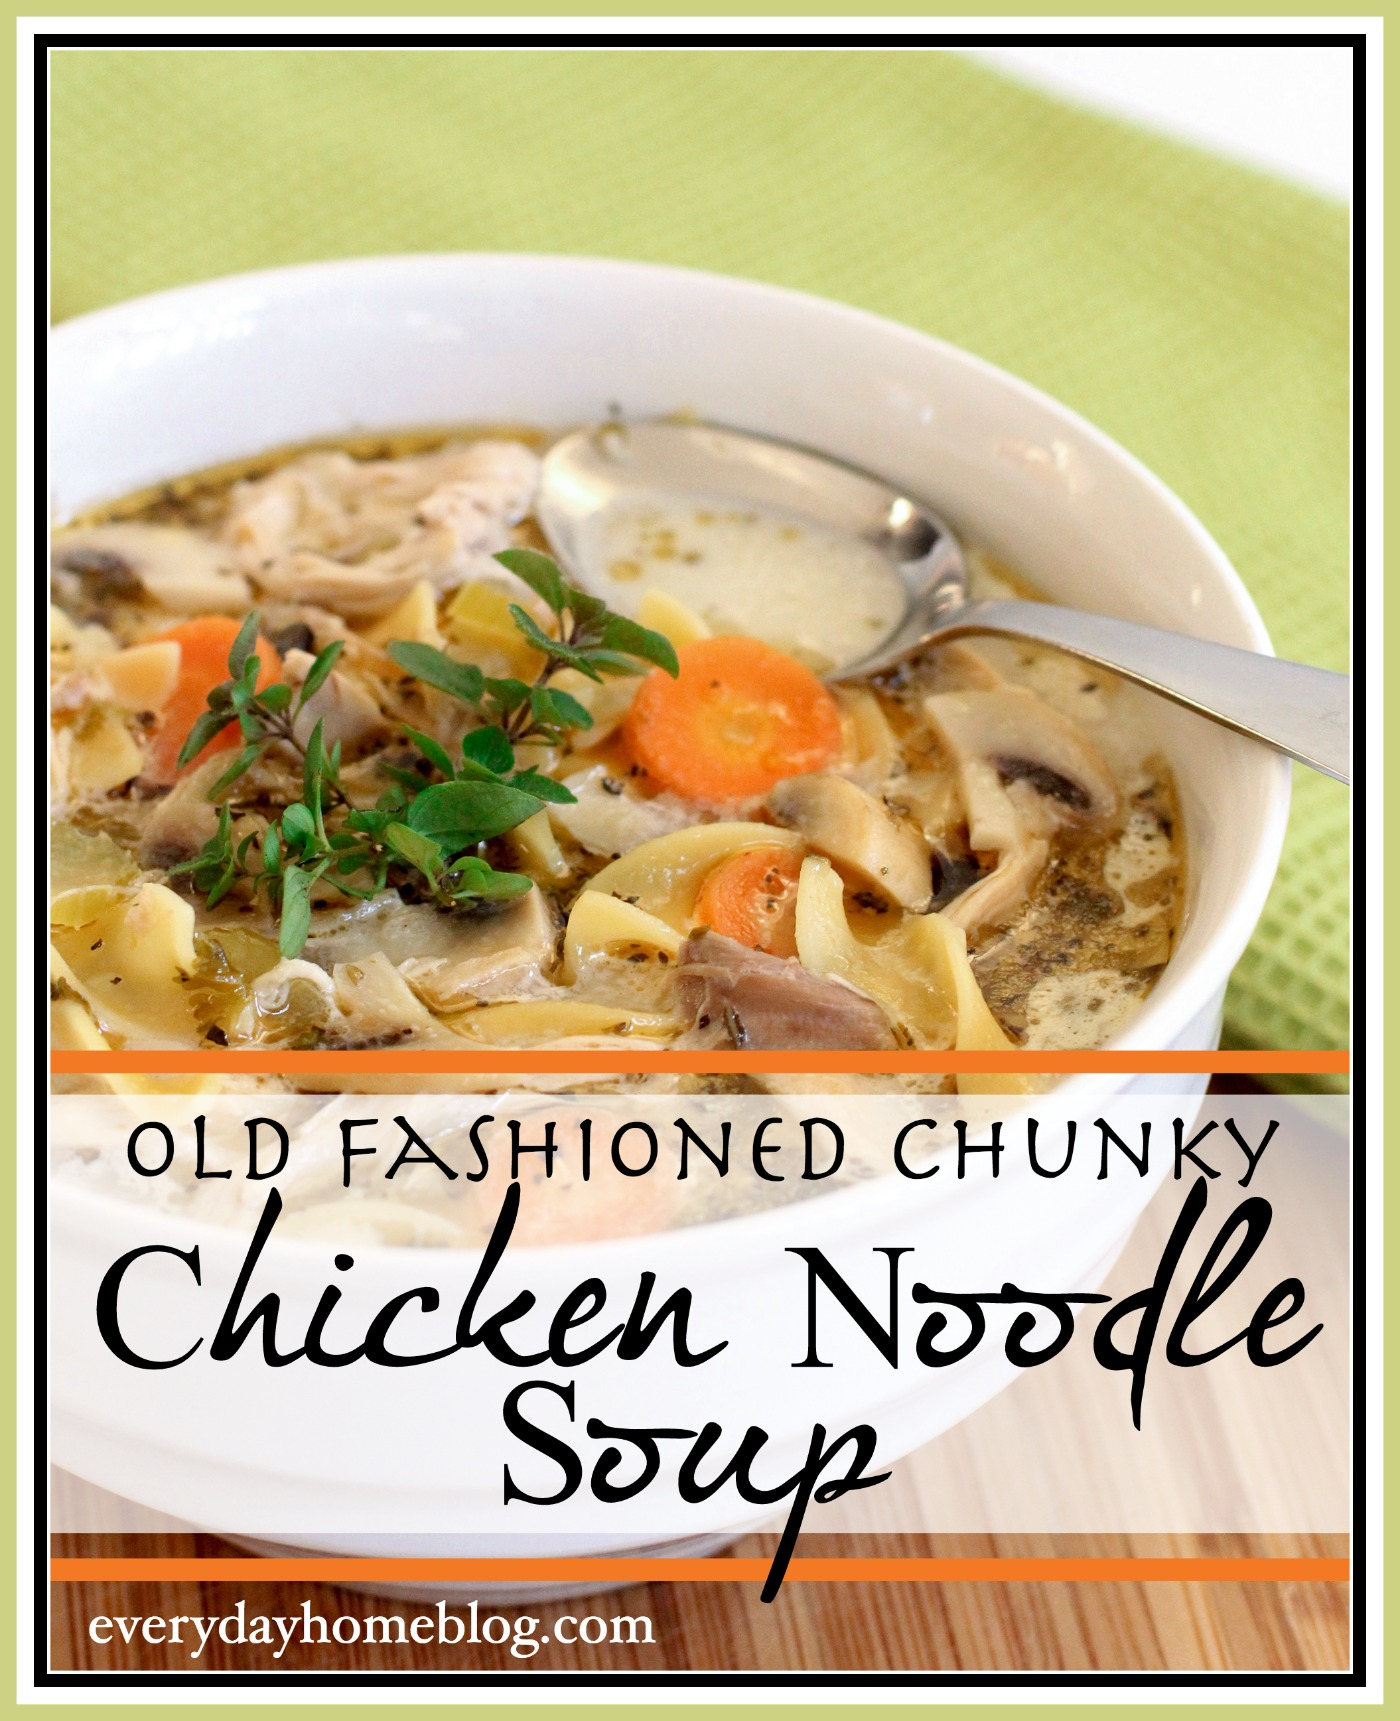 Old Fashioned Chunky Chicken Noodle Soup | The Everyday Home | www.everydayhomeblog.com